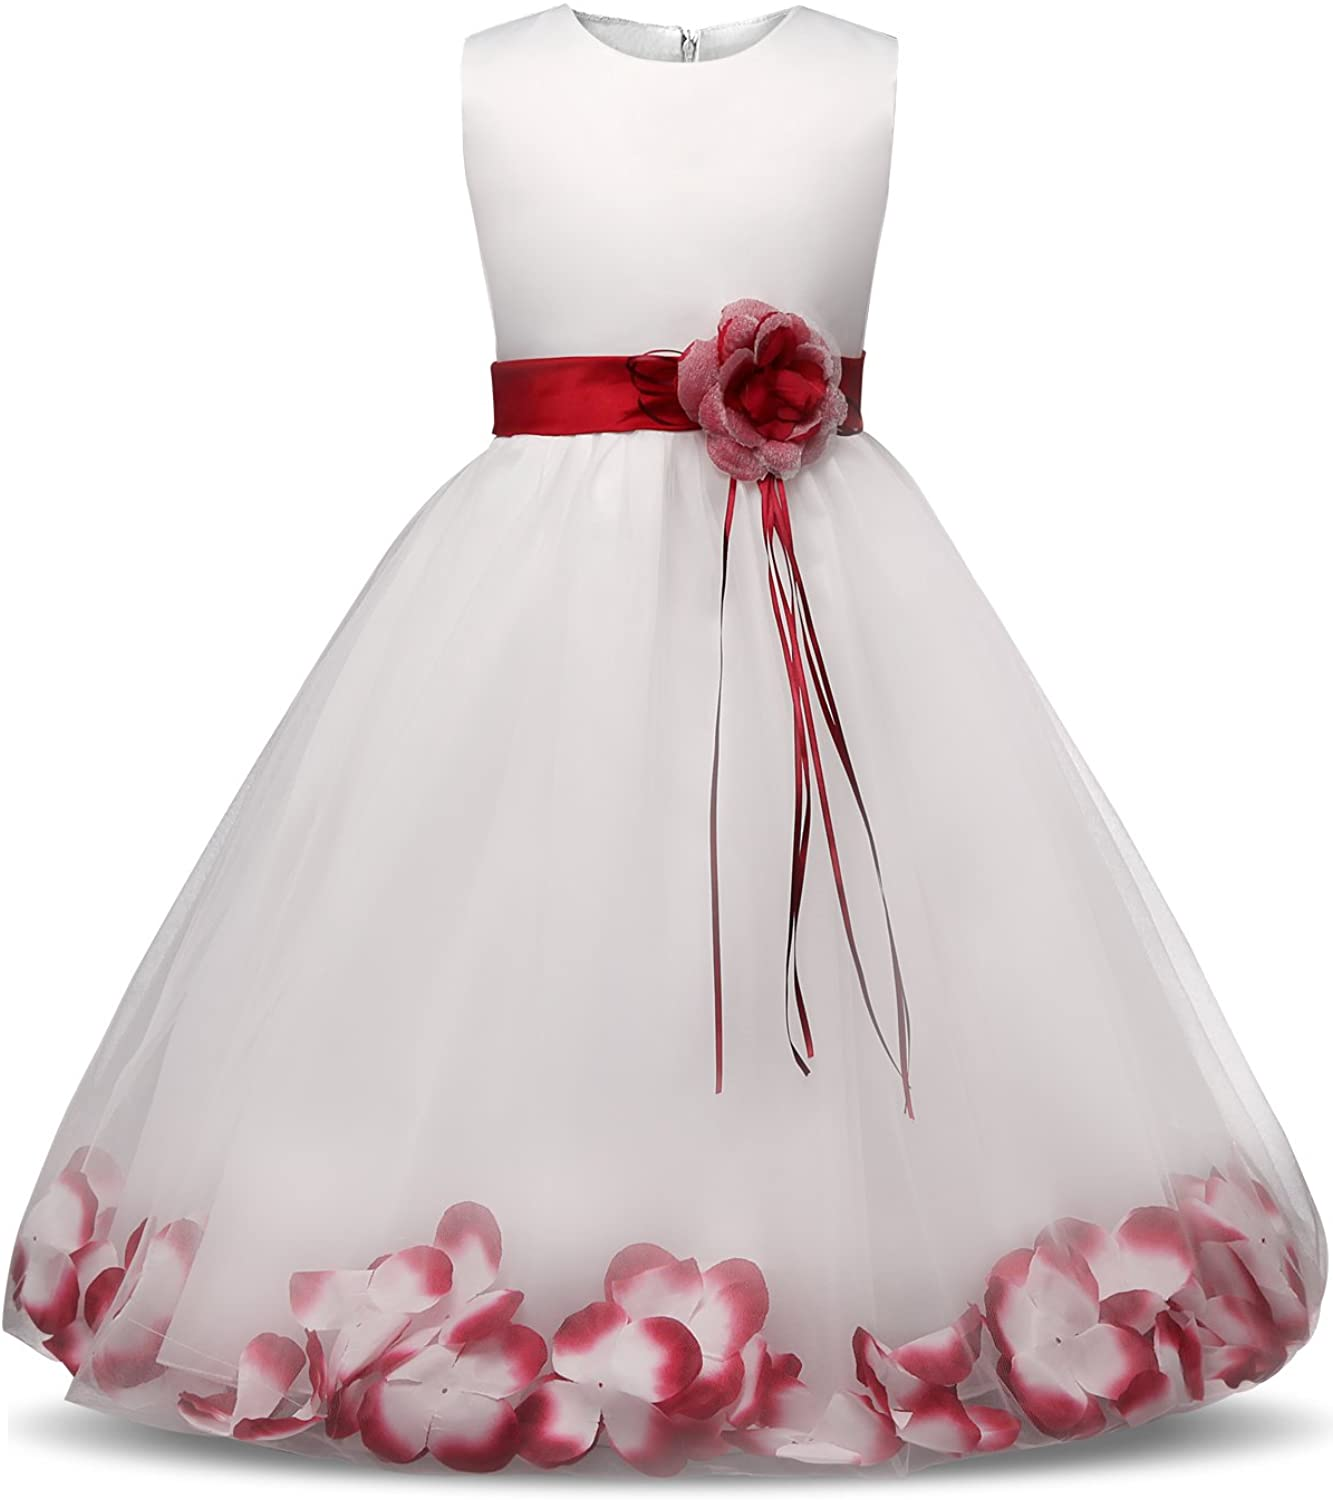 NNJXD Girl Tutu Flower Petals Bow Bridal Dress for Toddler Girl